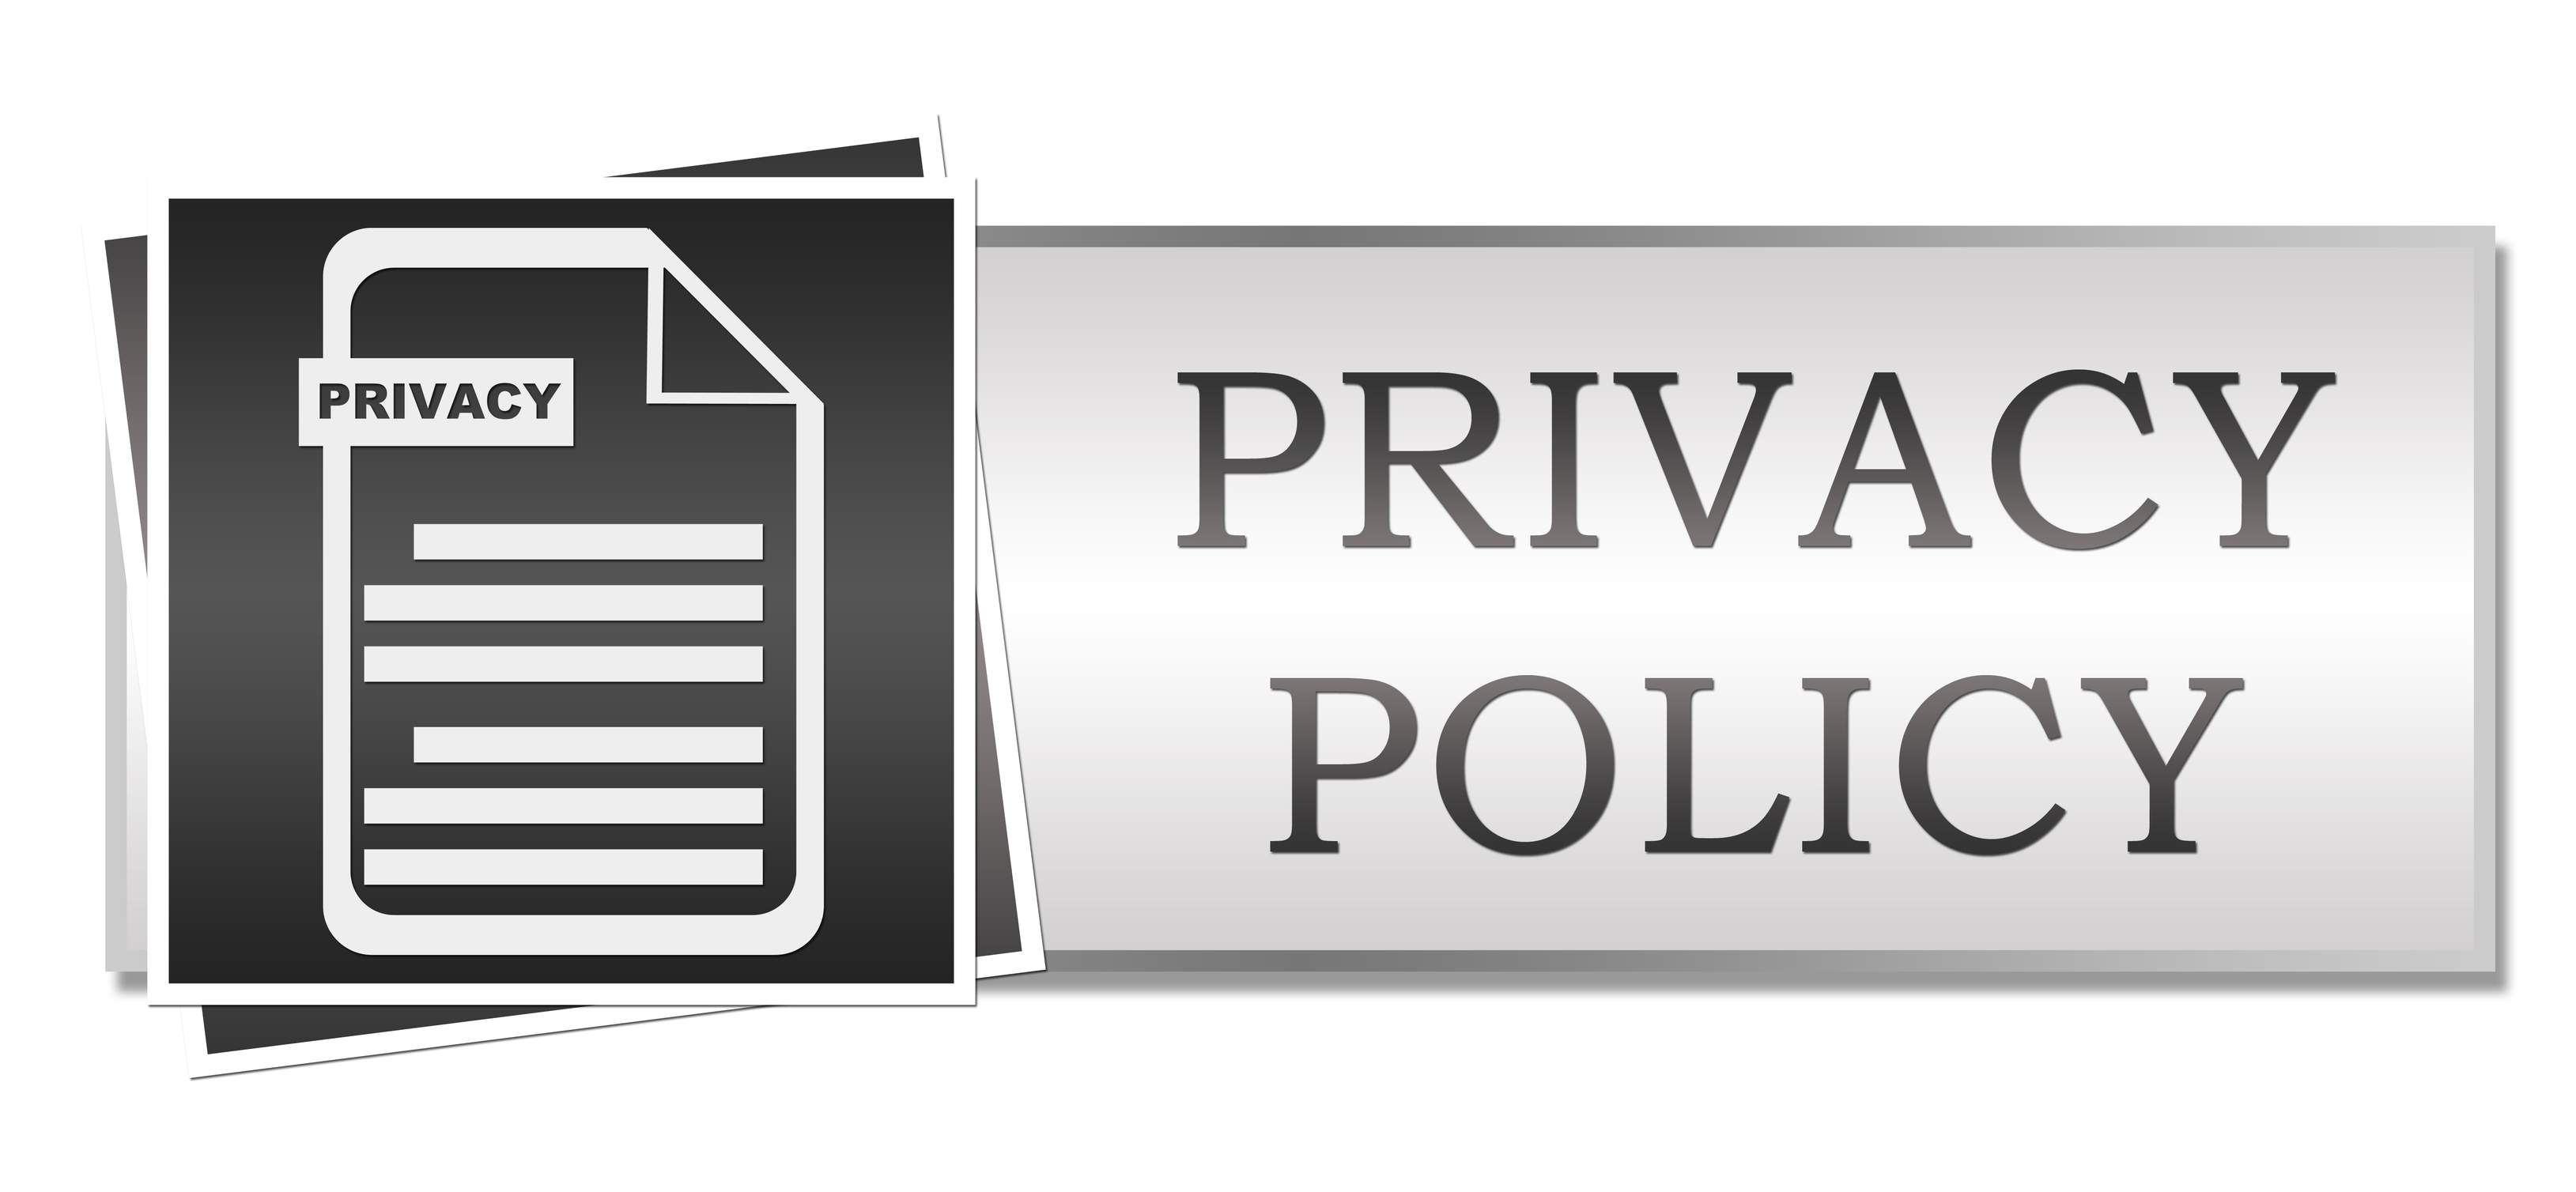 Privacy Policy: Privacy Policy Grey Button Style